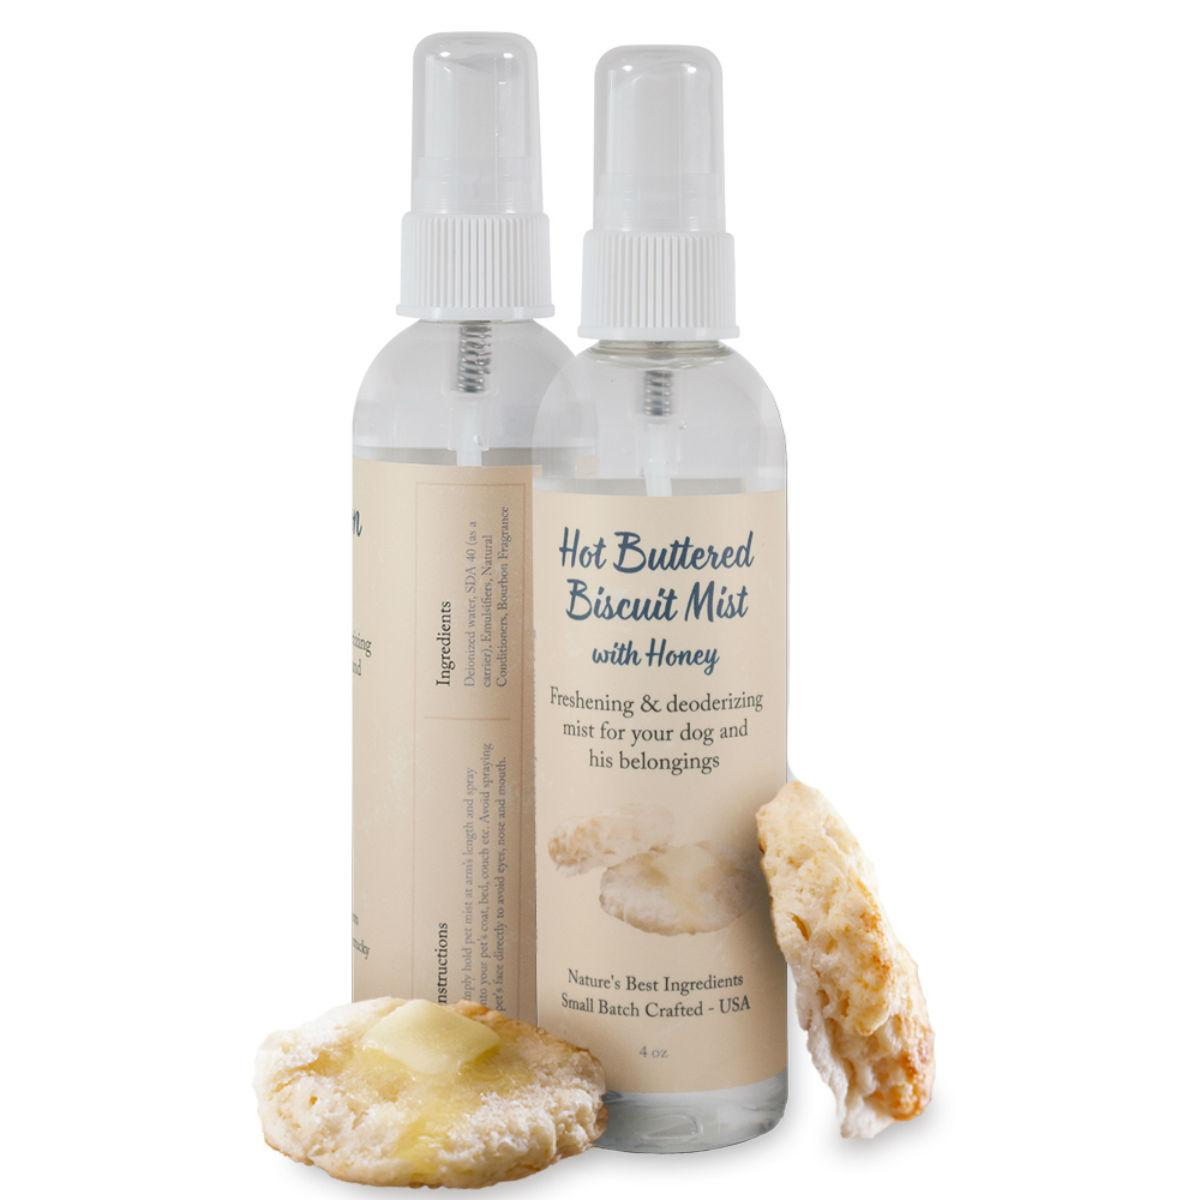 Southern Dog Freshening Dog Spray - Hot Buttered Biscuit with Honey Scent